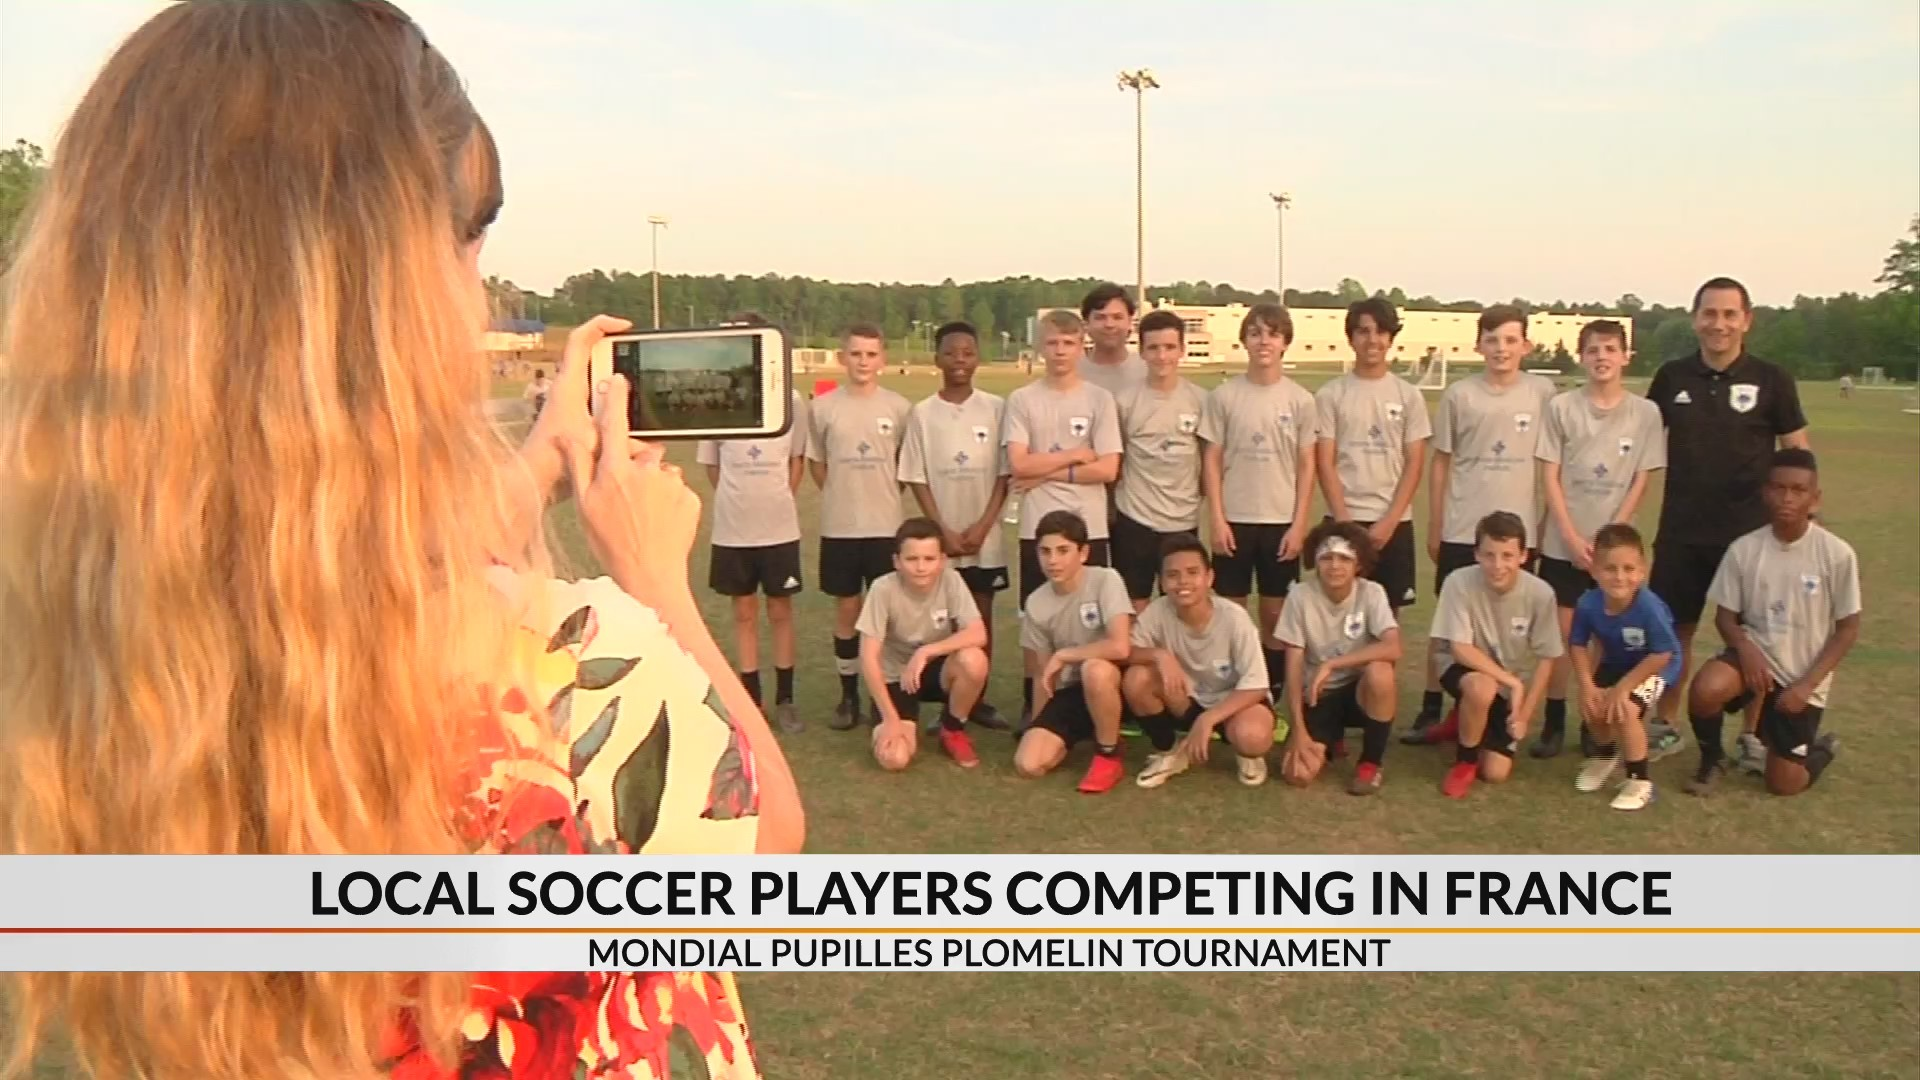 Upstate boys competing in international soccer tournament